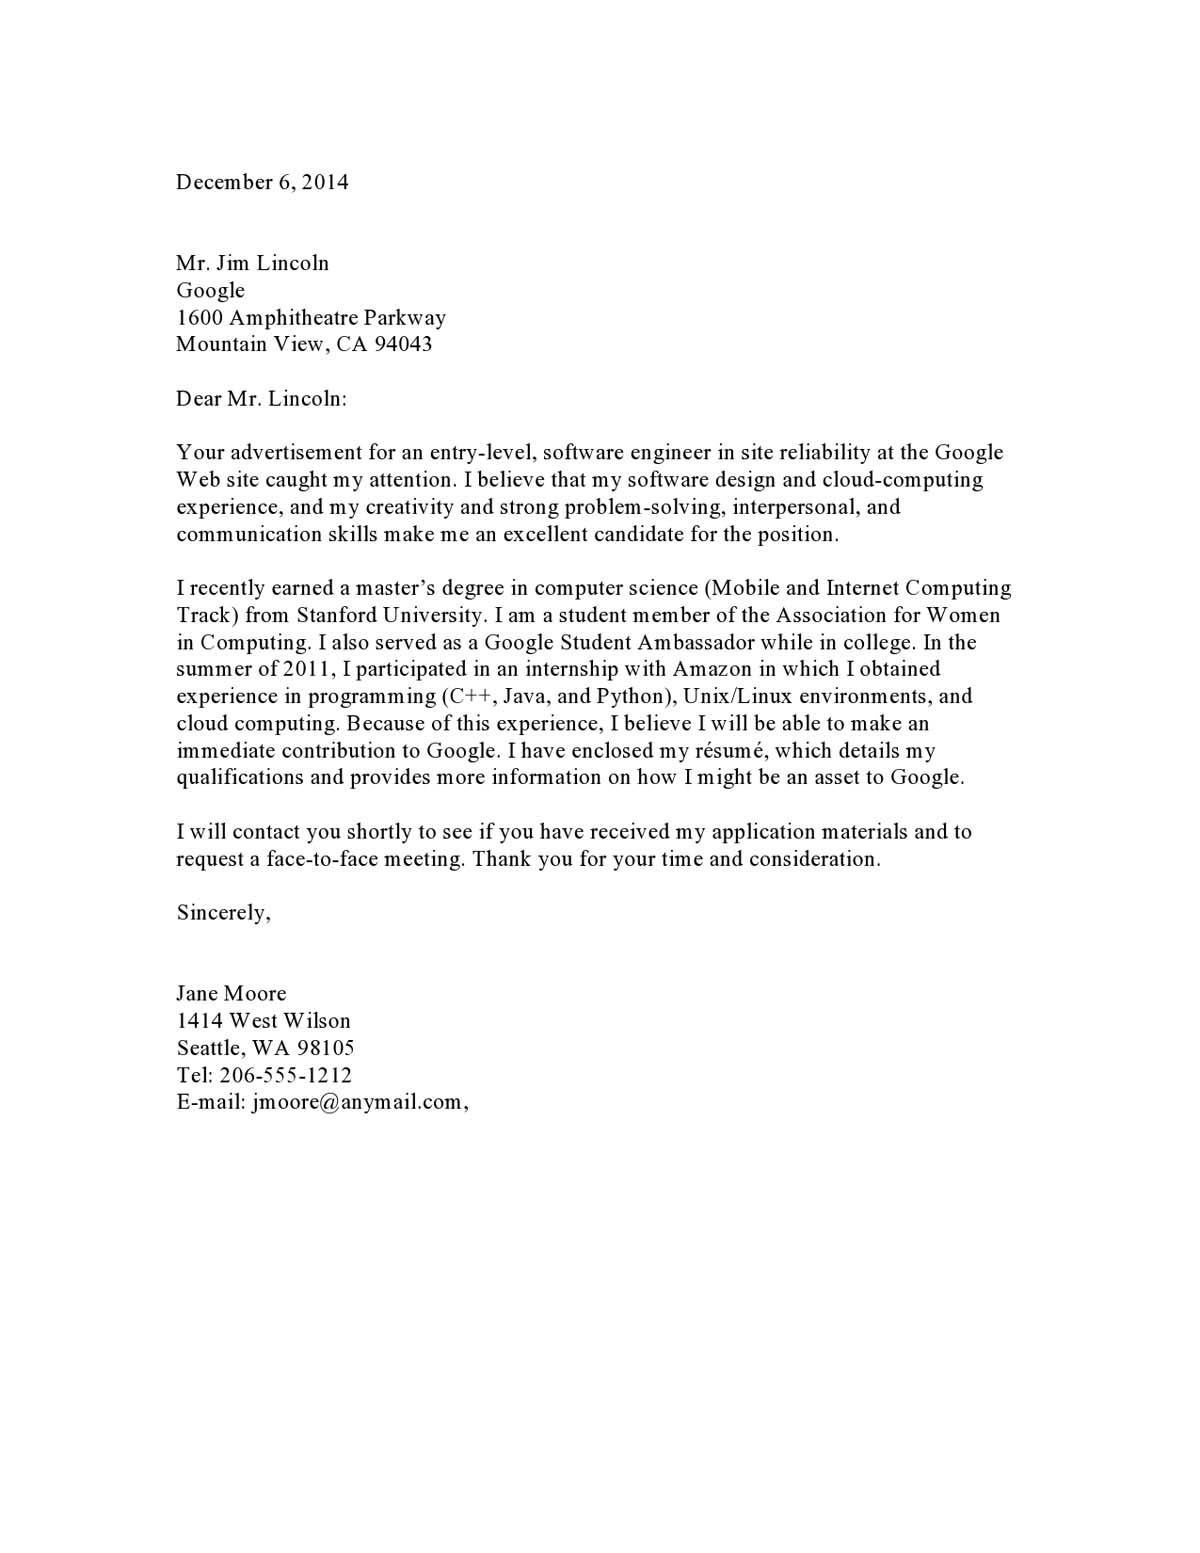 cover letter samples templates examples vault ideas for resume cletreinter09 open office Resume Cover Letter Ideas For Resume